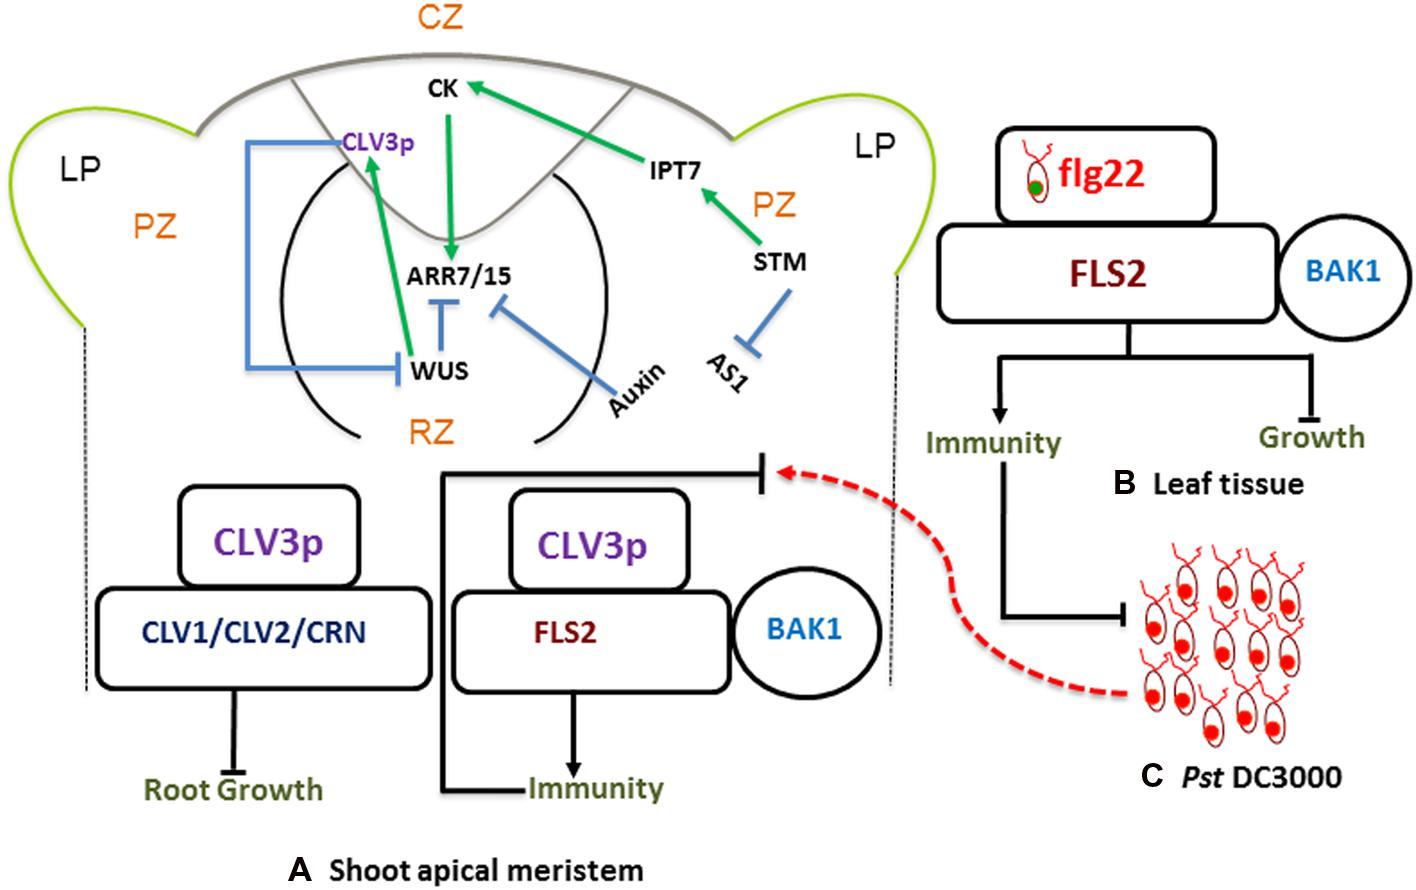 regulation of arabidopsis brassinosteroid signaling by atypical basic helix-loop-helix proteins